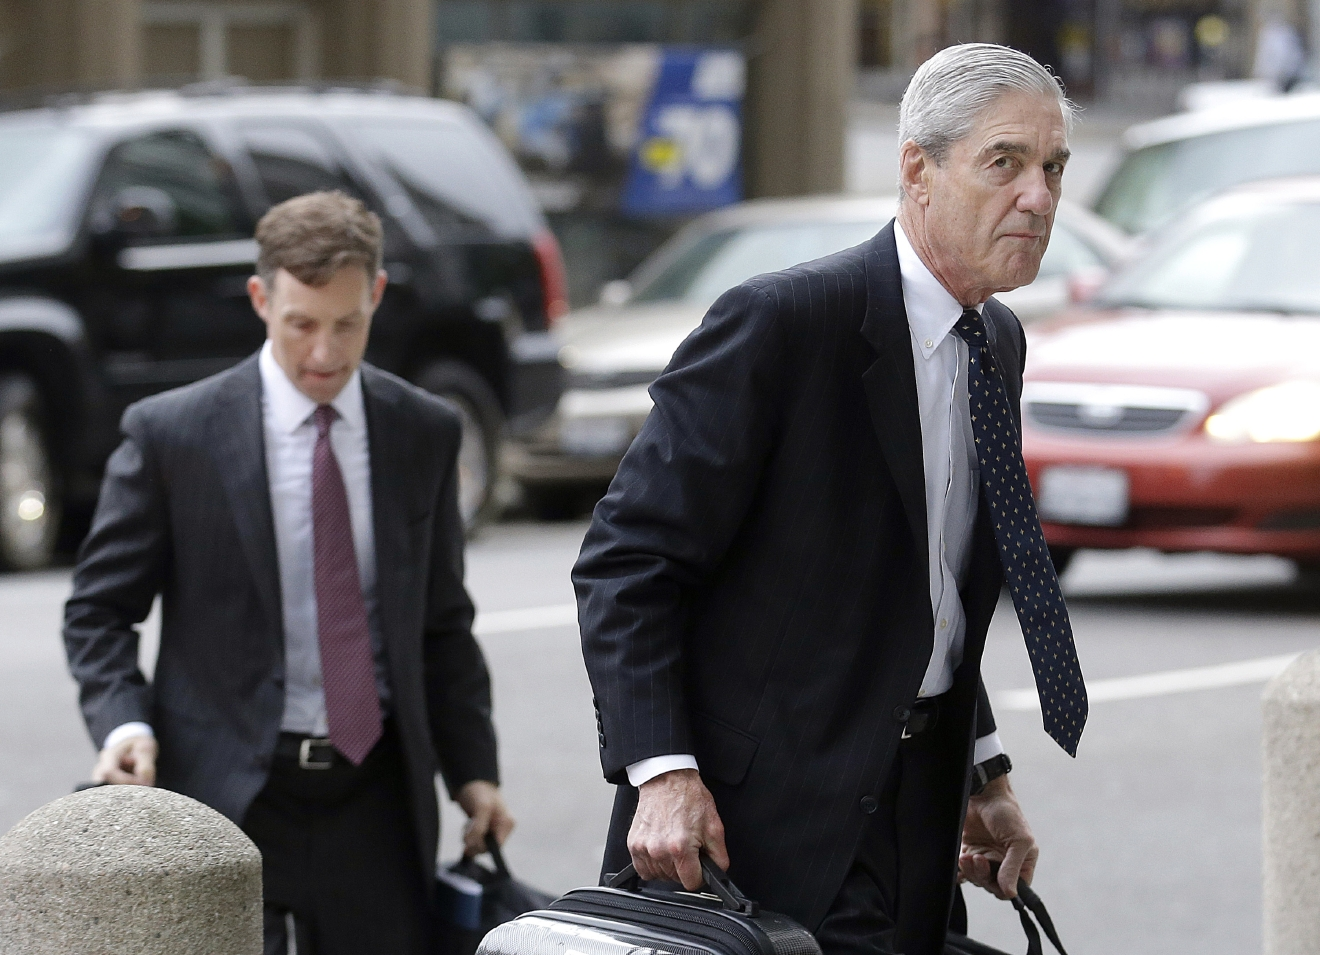 Attorney and former FBI Director Robert Mueller, right, arrives for a court hearing at the Phillip Burton Federal Building in San Francisco, Thursday, April 21, 2016. (AP Photo/Jeff Chiu)